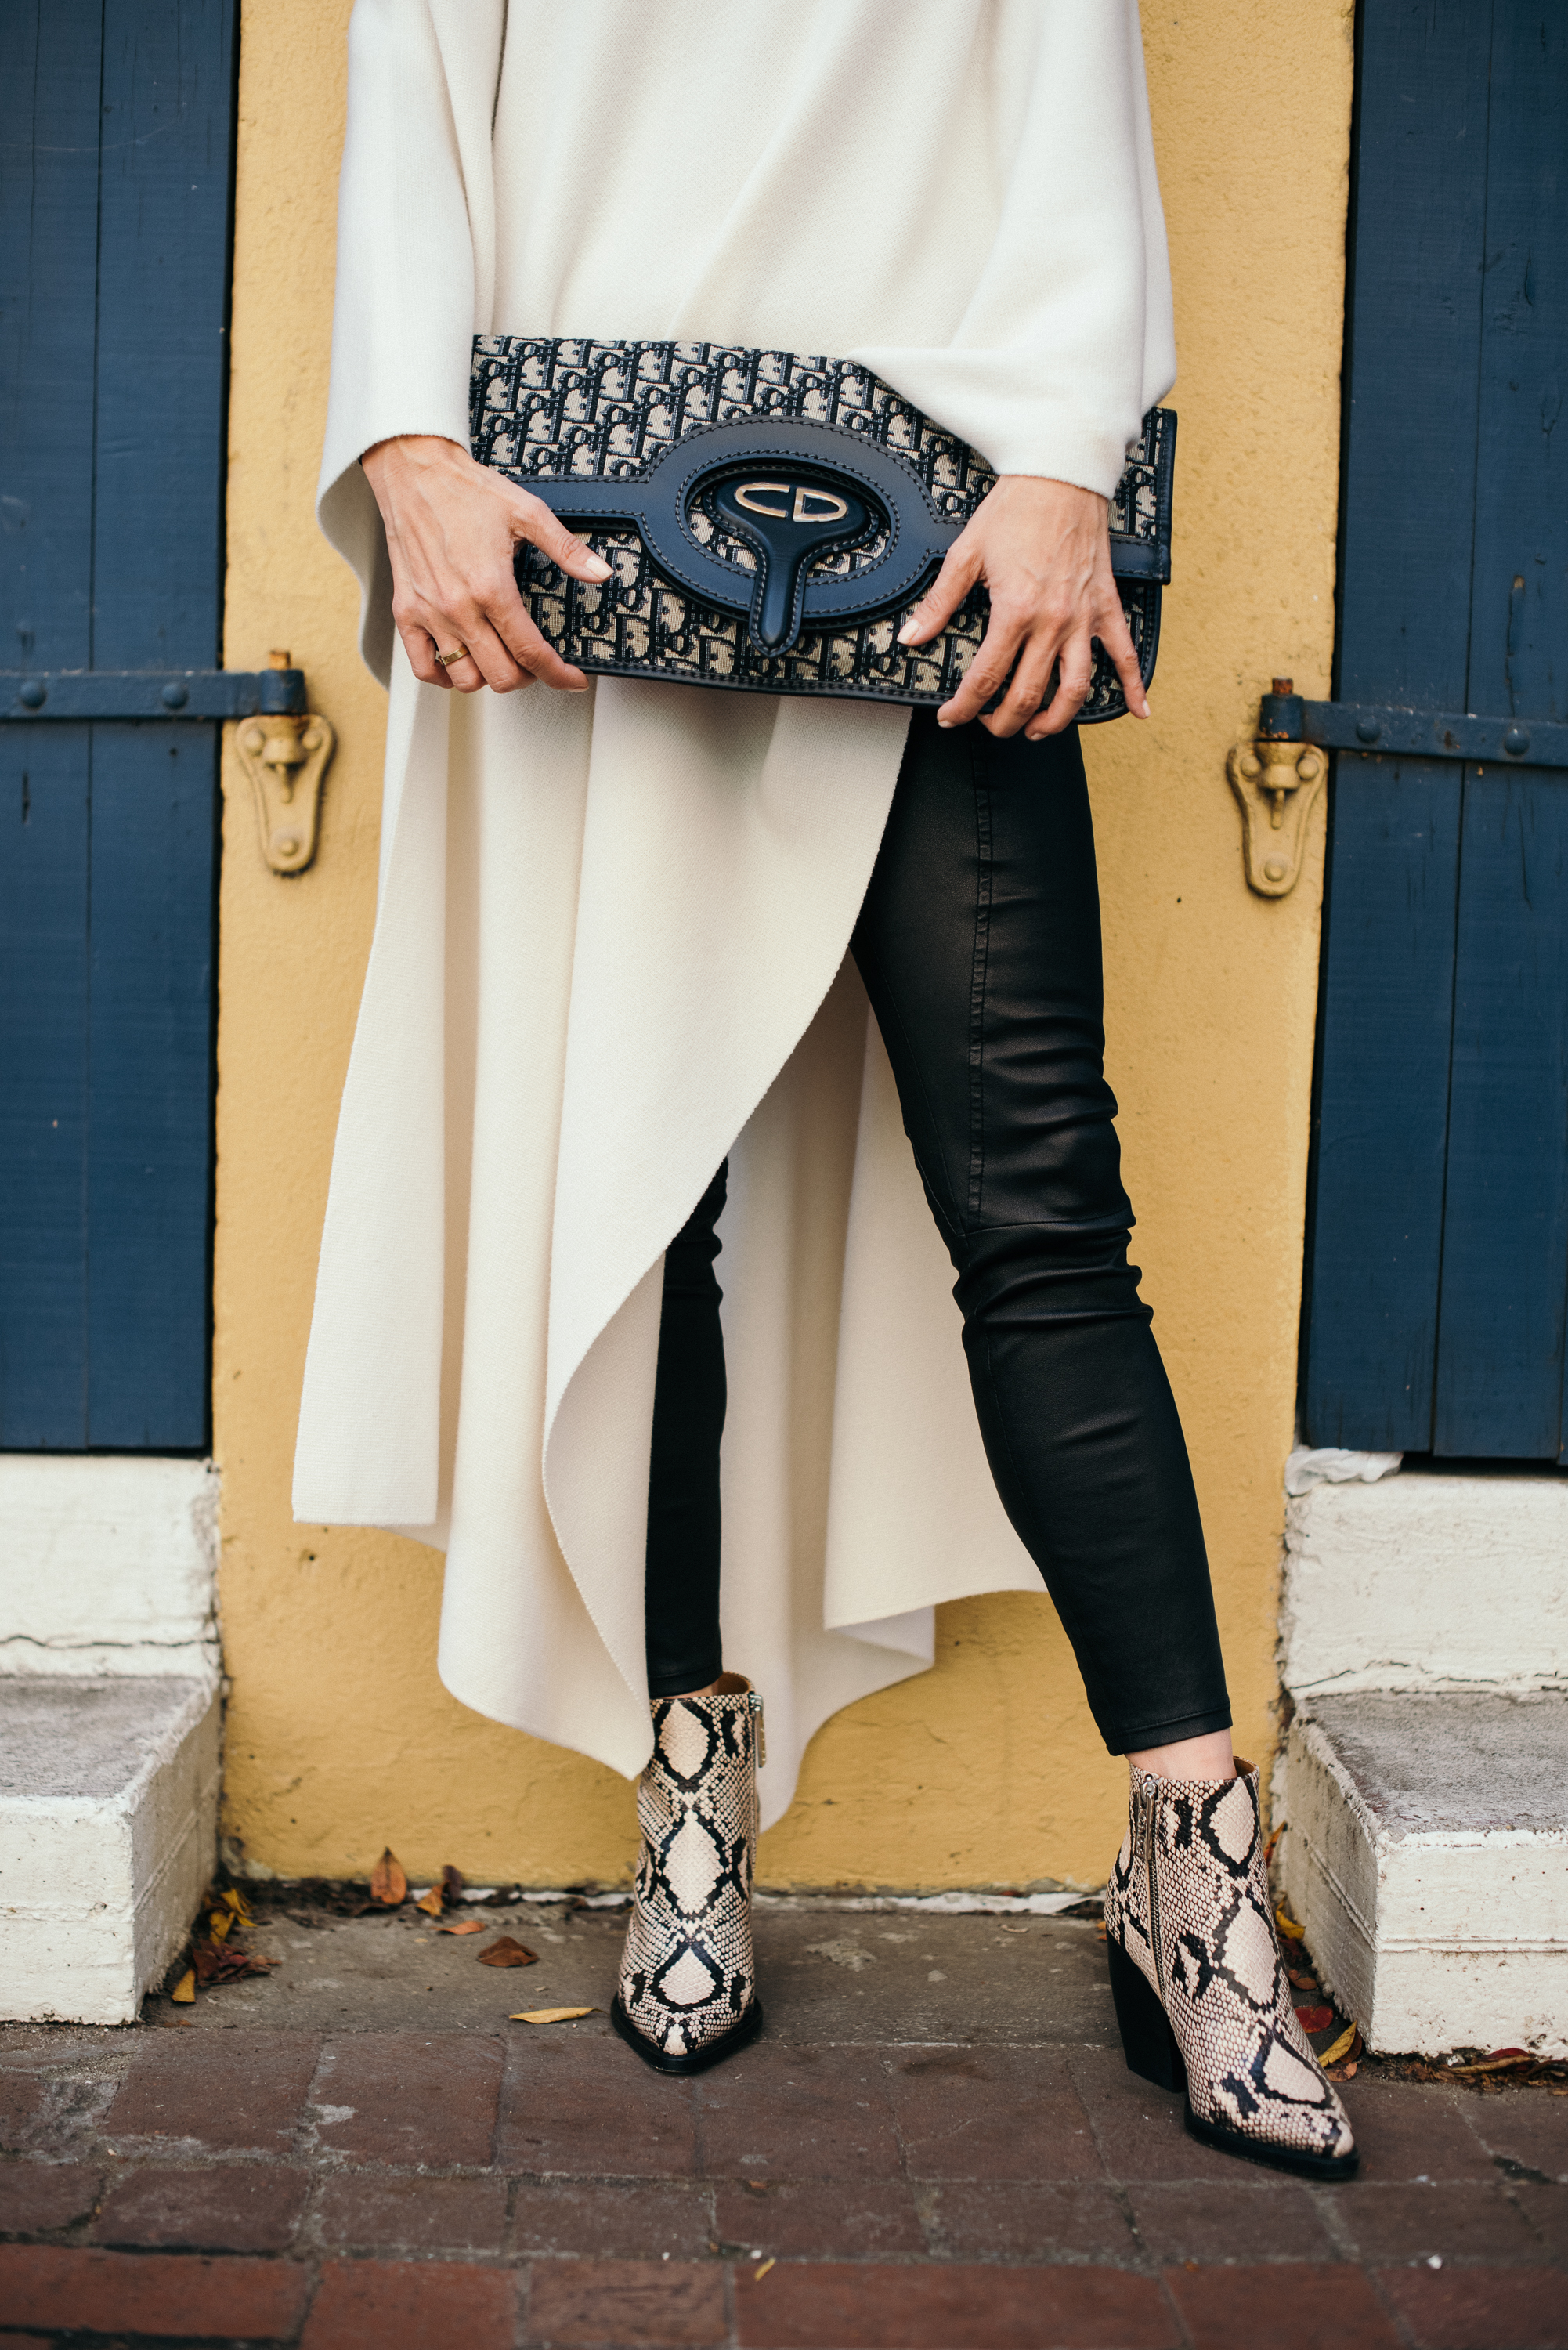 poncho: chloe, bag: dior, boots: chloe, pants: helmut lang